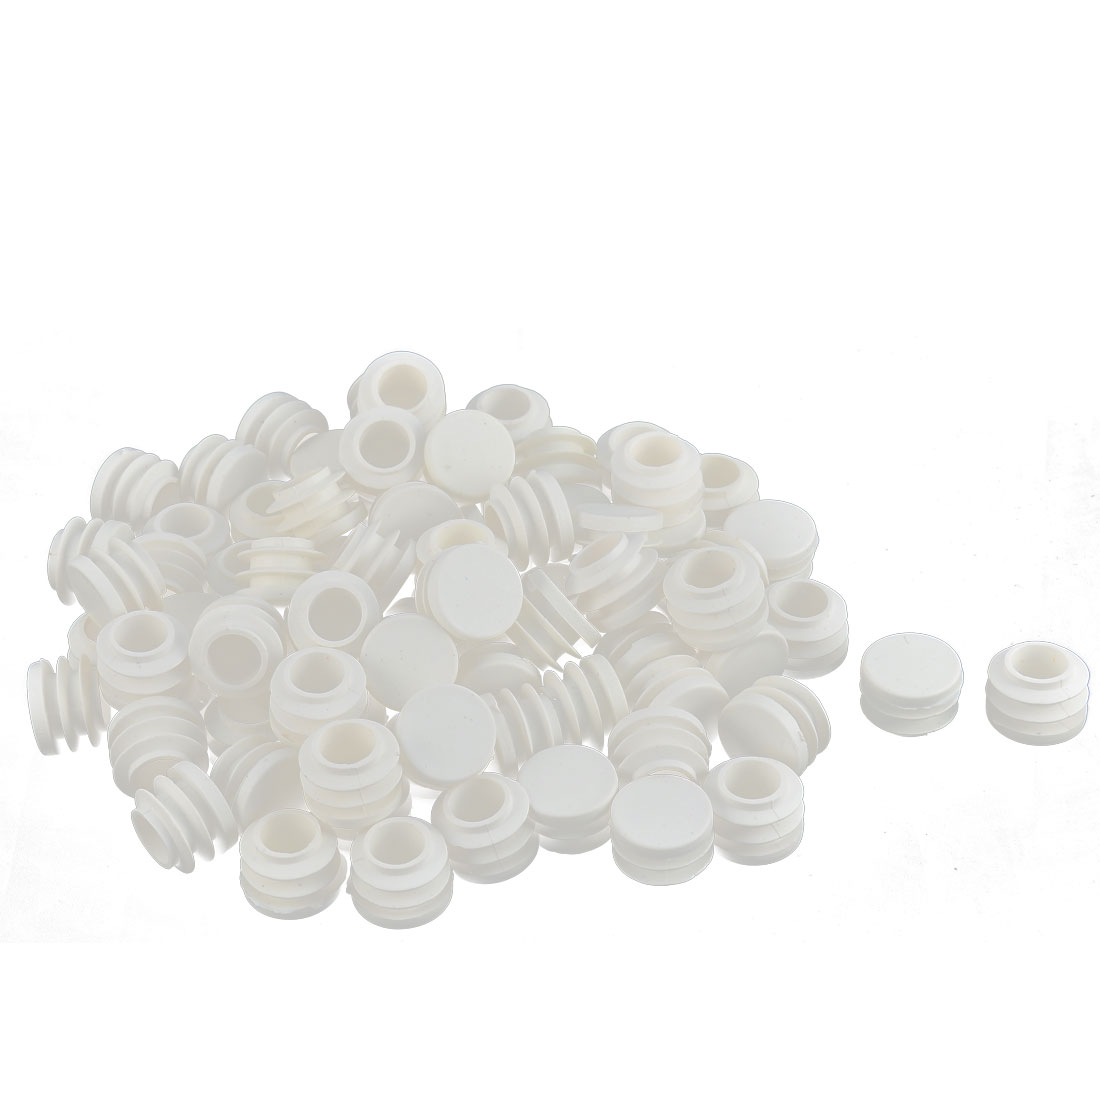 Table Chair Plastic Round Tube Pipe Insert Cap Cover Protector White 19mm Dia 80pcs